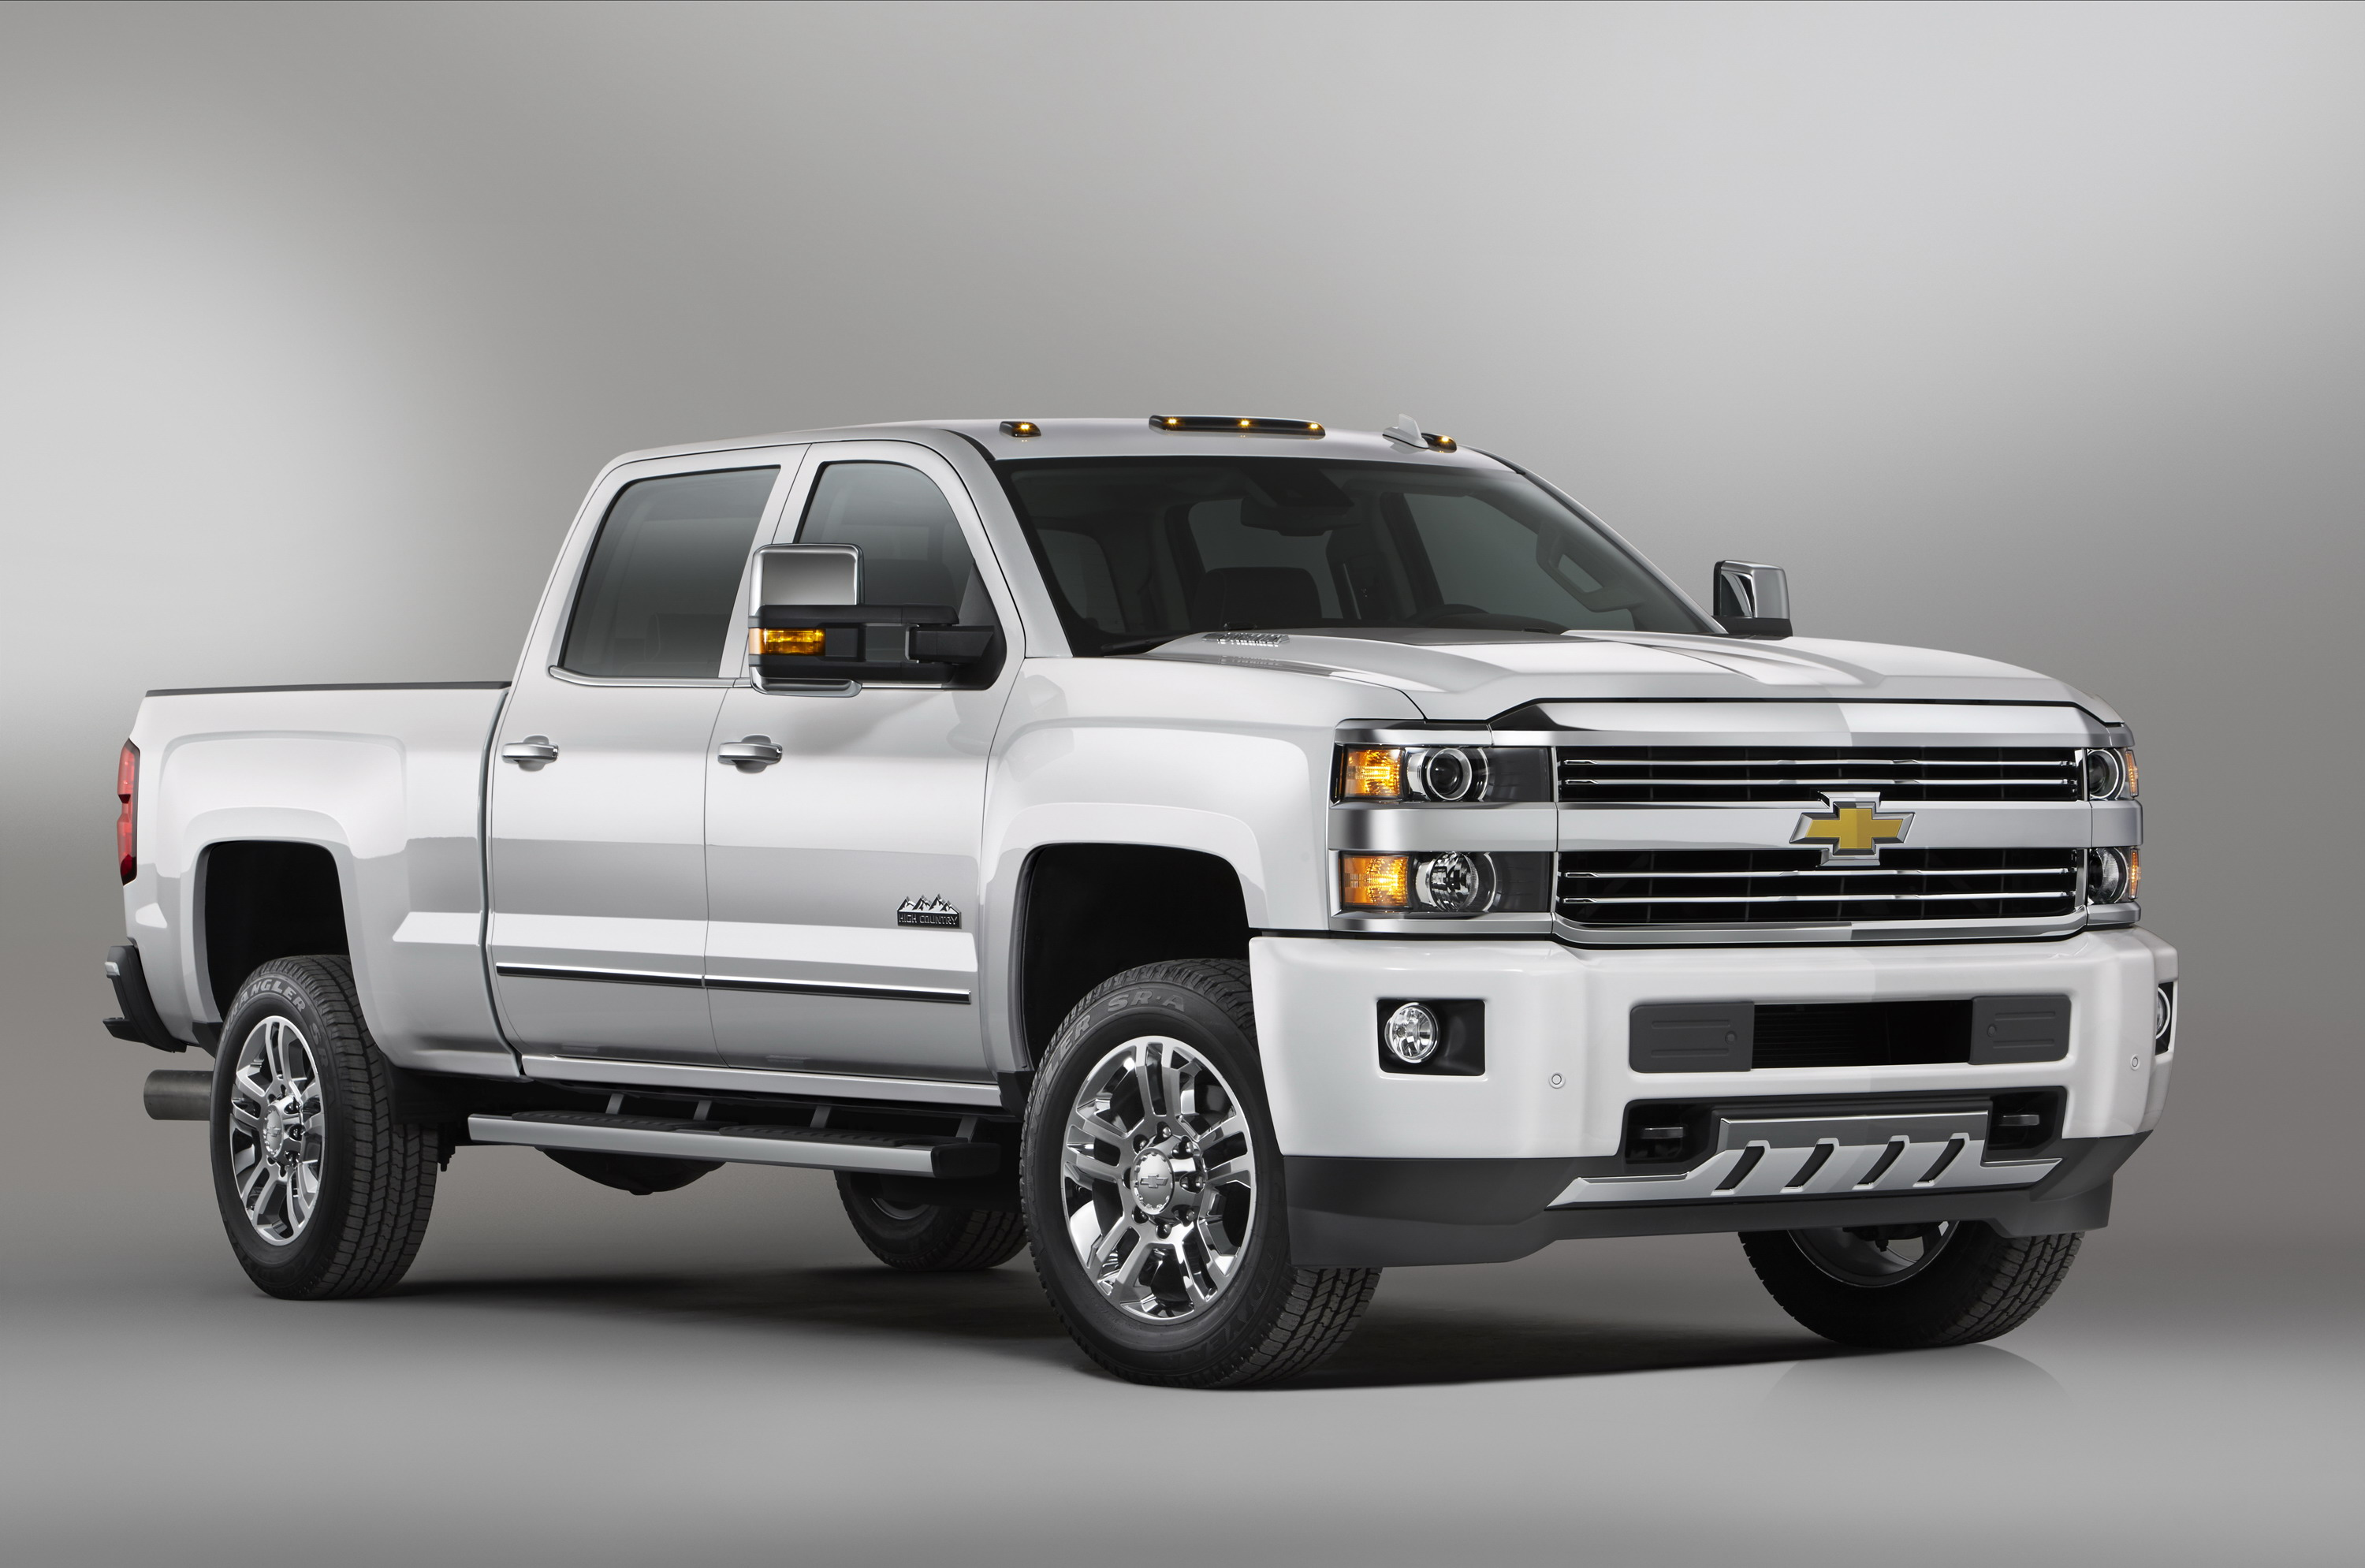 photos punch drive engine test chevrolet big tom new brings s silverado chevy duramax quimby